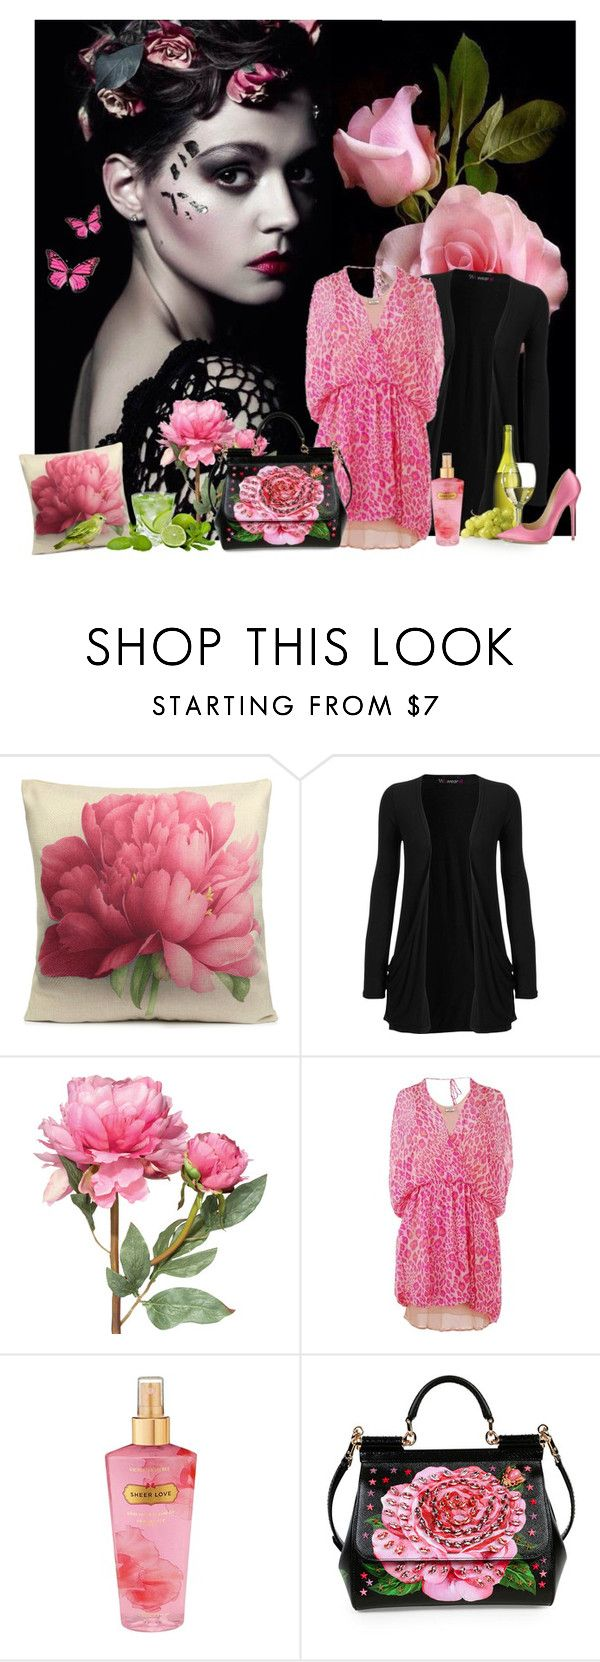 """Untitled #2435"" by tina-teena ❤ liked on Polyvore featuring WearAll, OKA, By Malene Birger, Victoria's Secret, Dolce&Gabbana and Jimmy Choo"